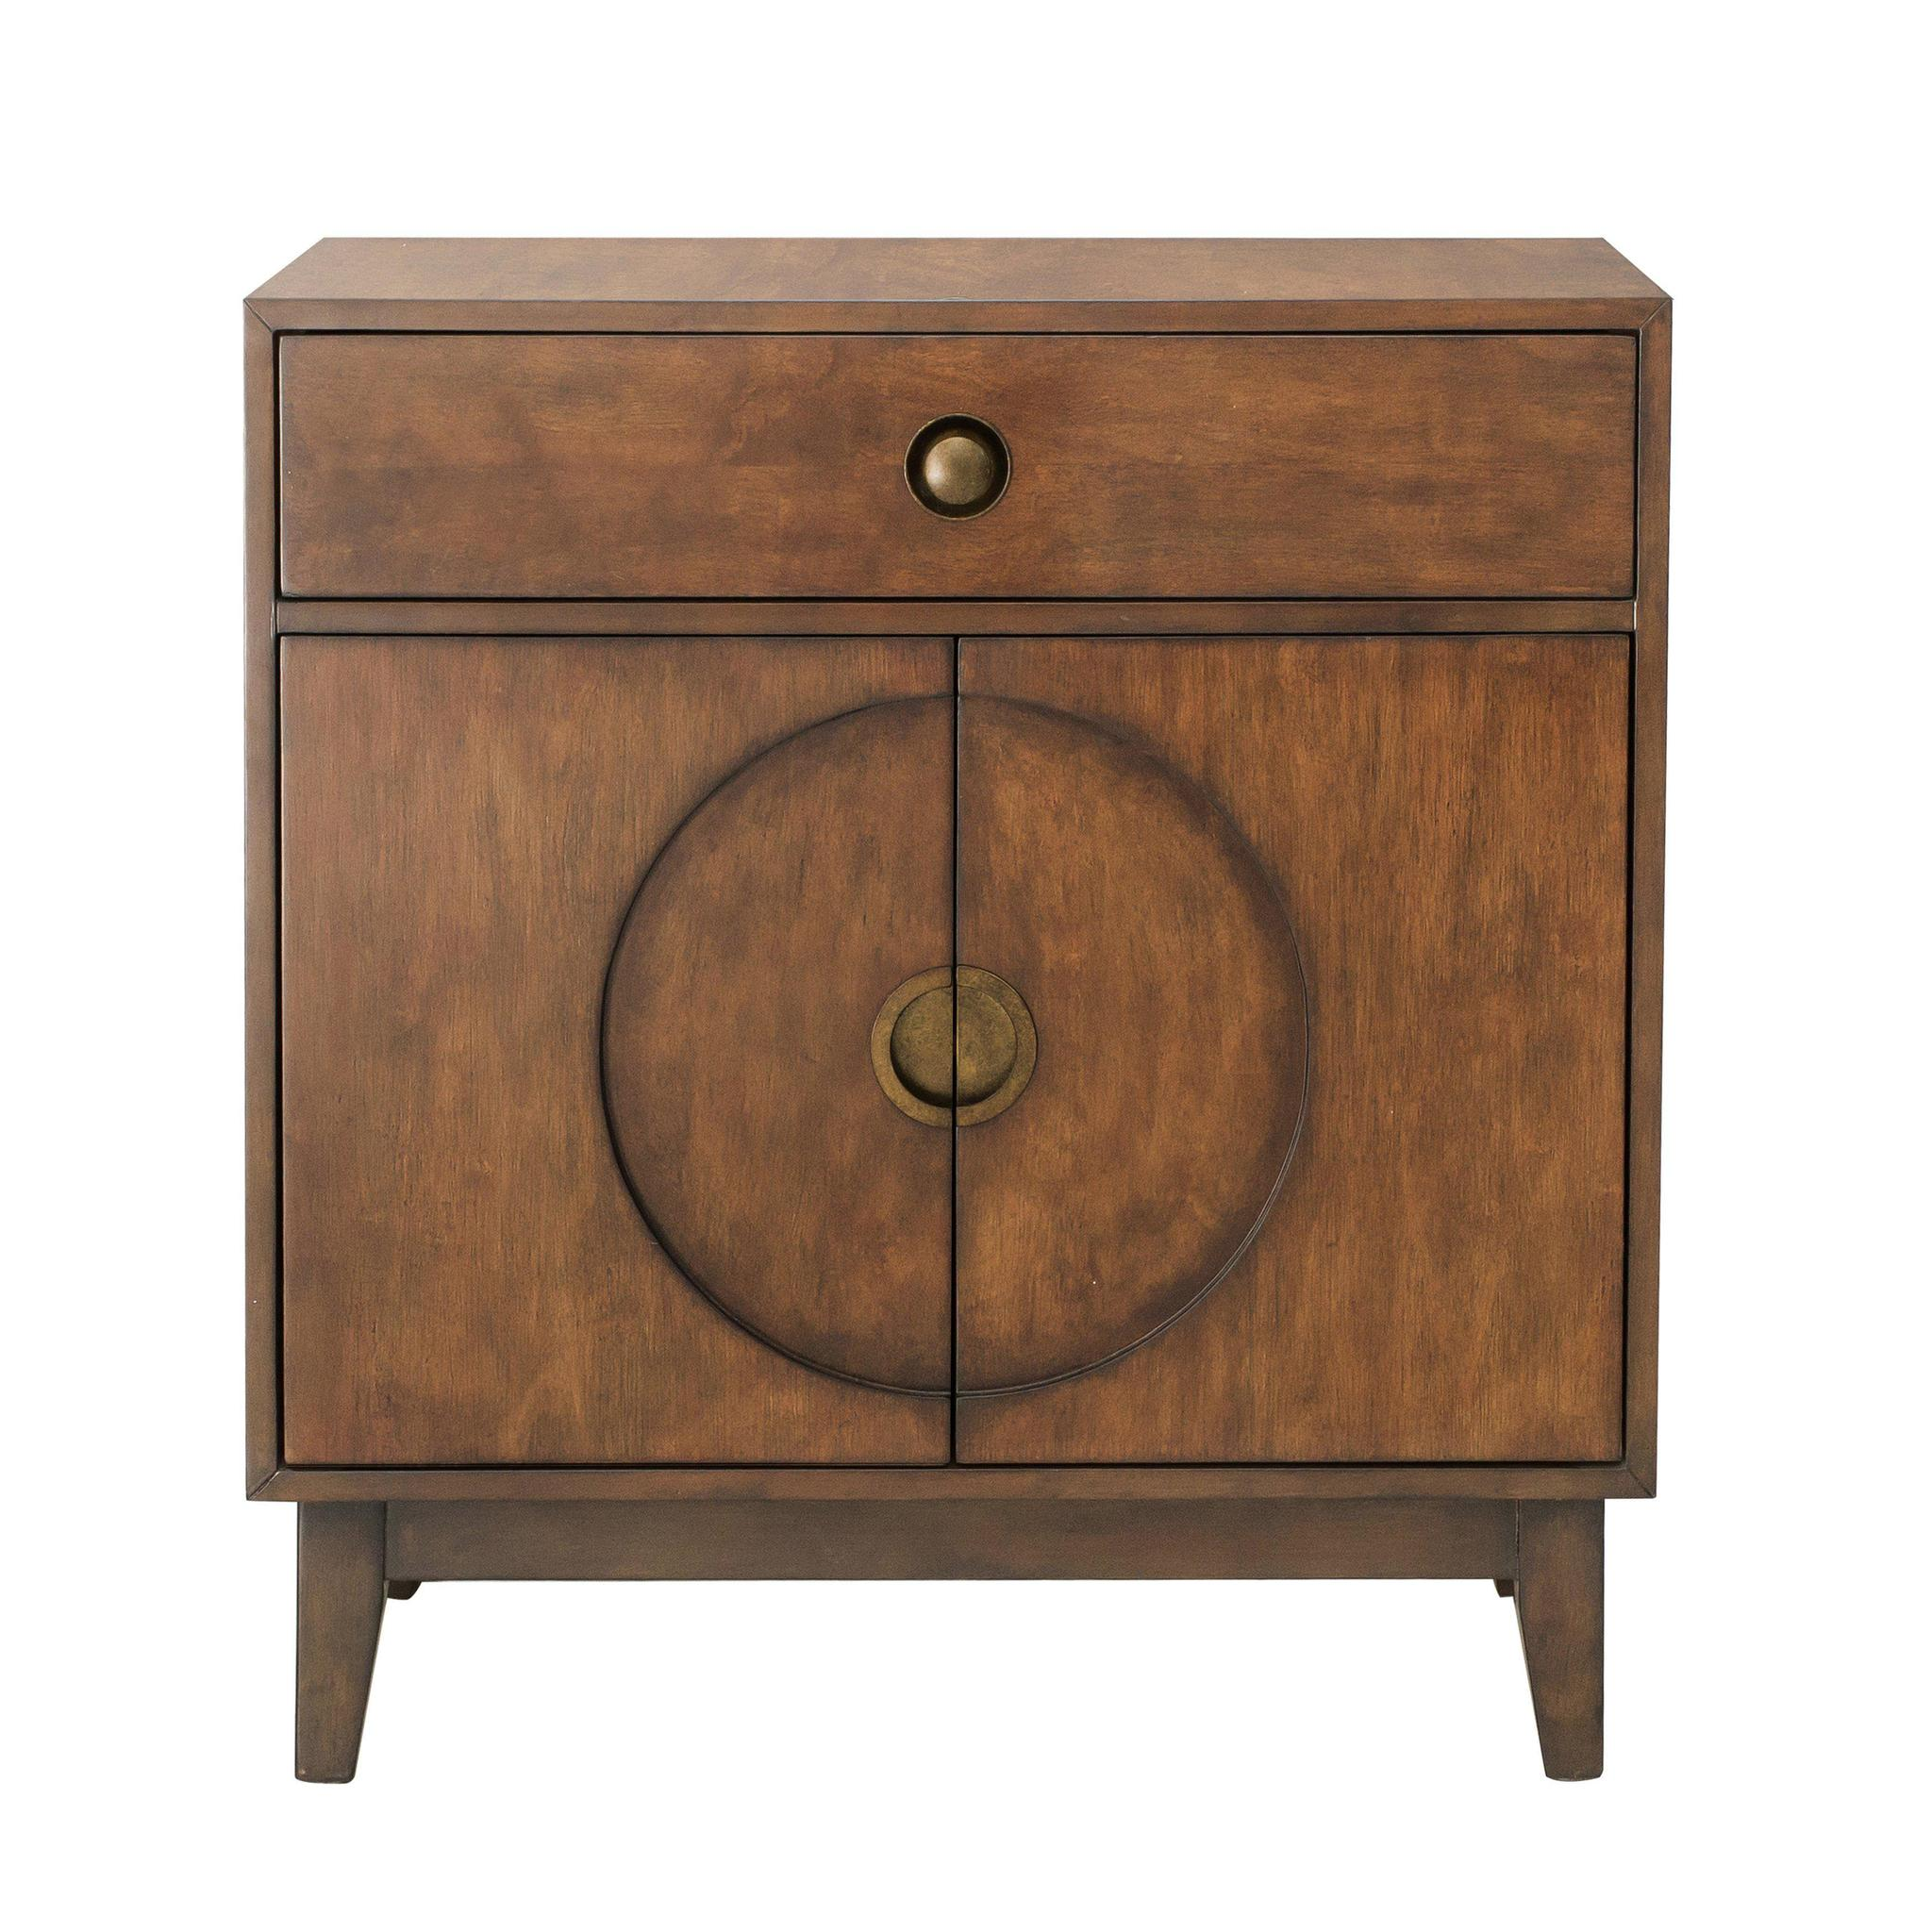 mid century modern walnut accent chest cabinet table parker gwen metal drum high top dining for mango wood end patio furniture clearance heavy duty throne target dinosaur bedding